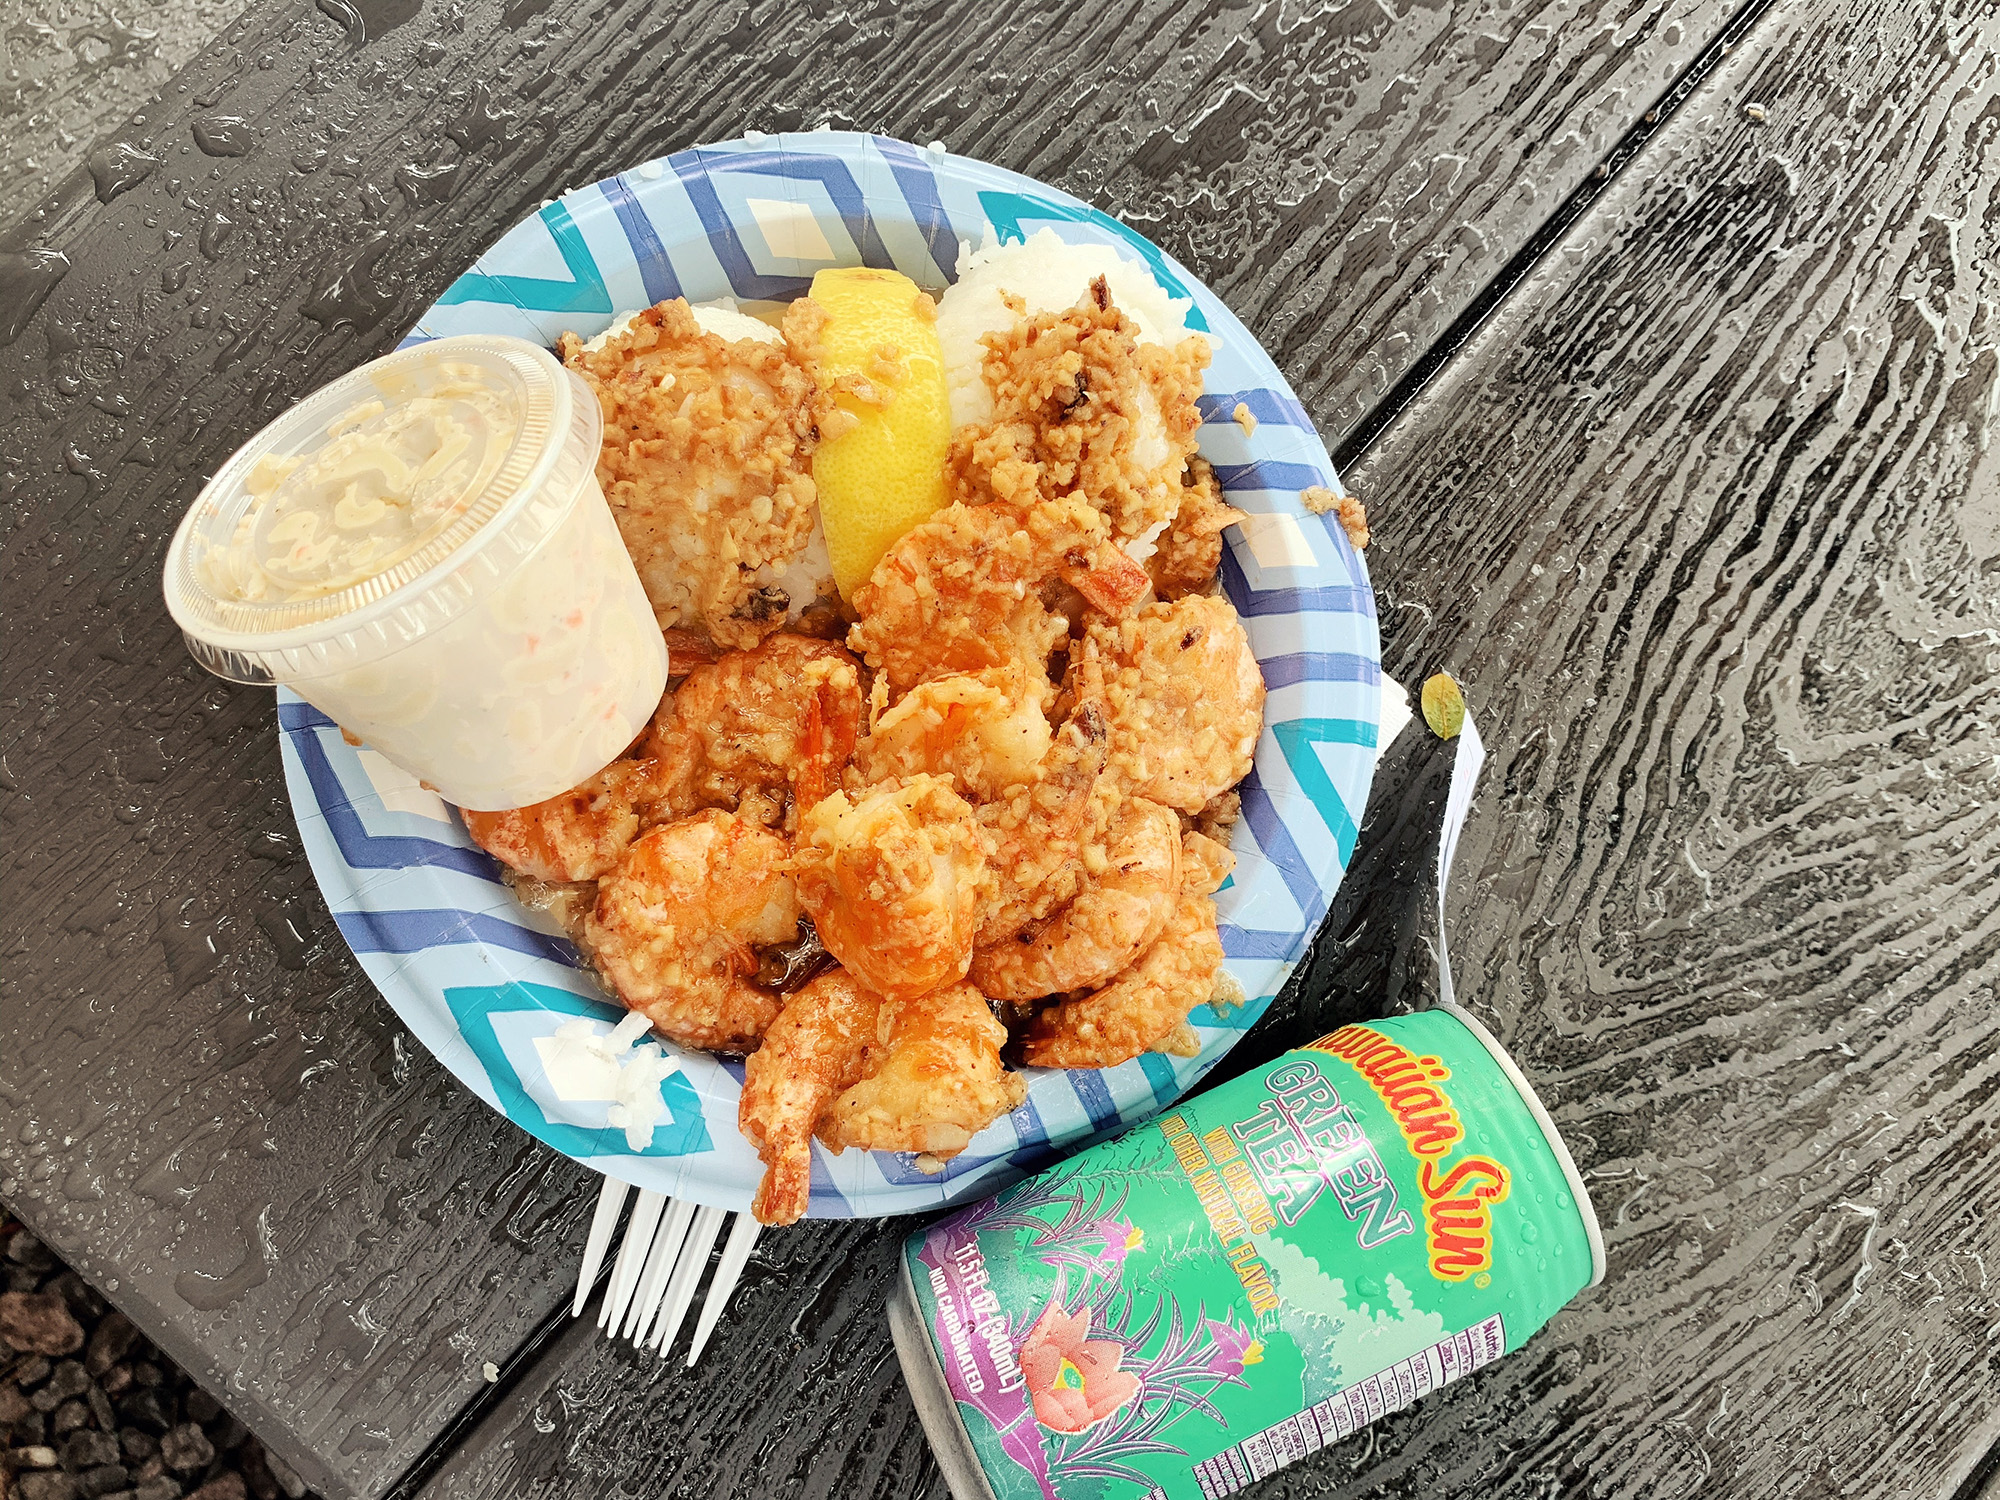 places to eat in Oahu, Hawaii - Giovanni's Shrimp Truck